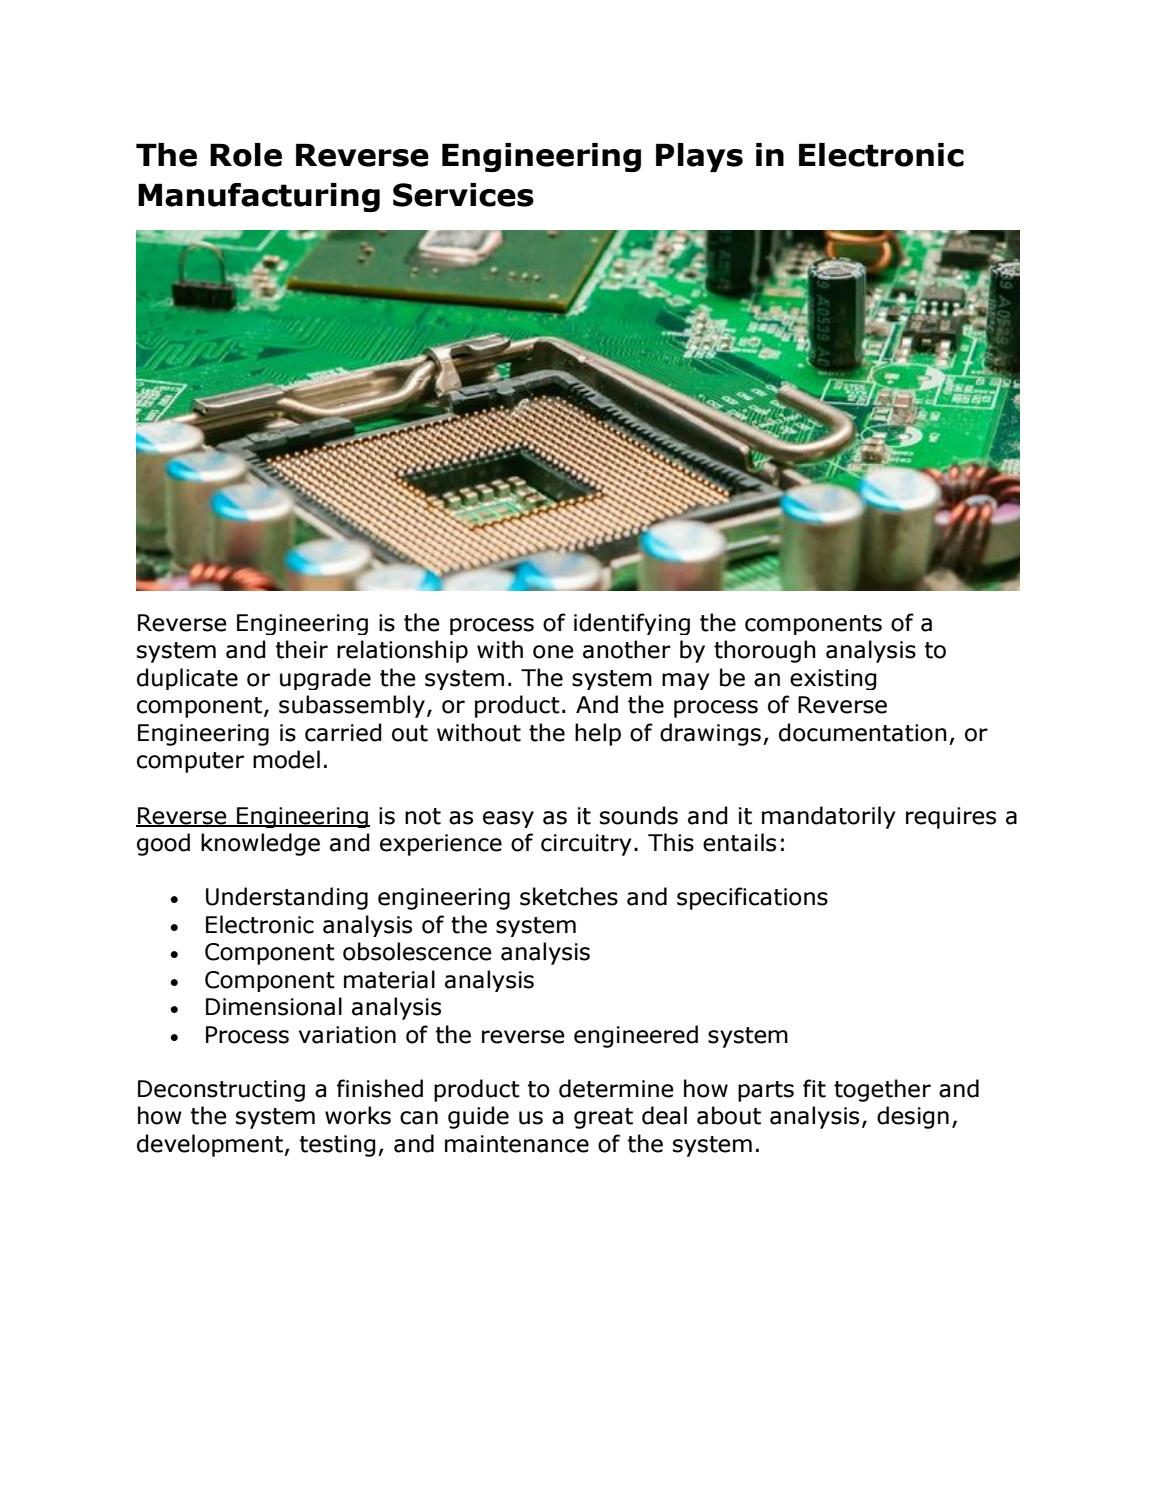 The Role Reverse Engineering Plays in Electronic Manufacturing ...